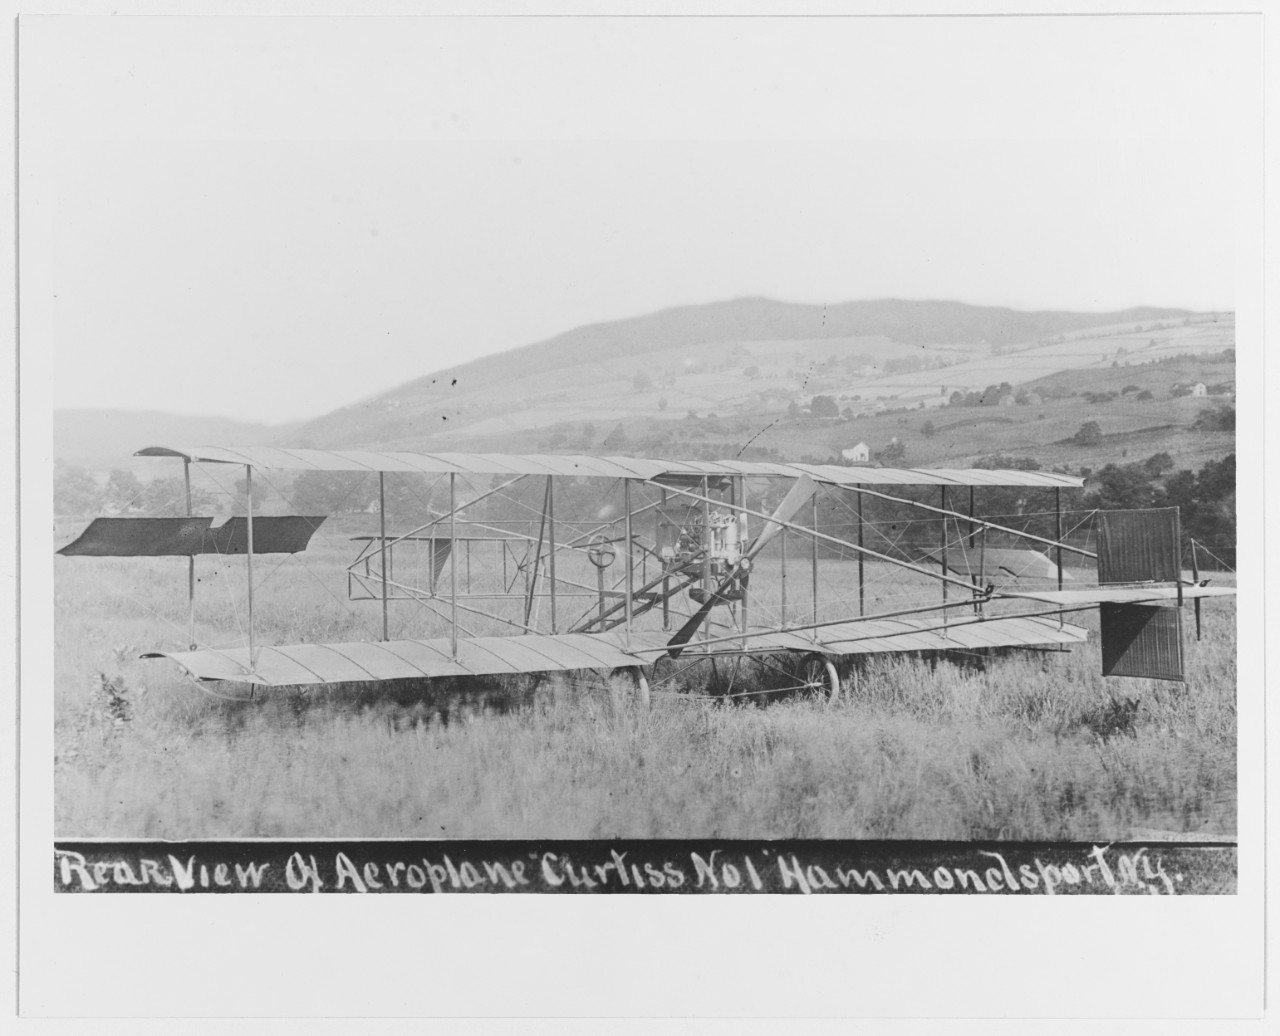 Curtiss's first aircraft